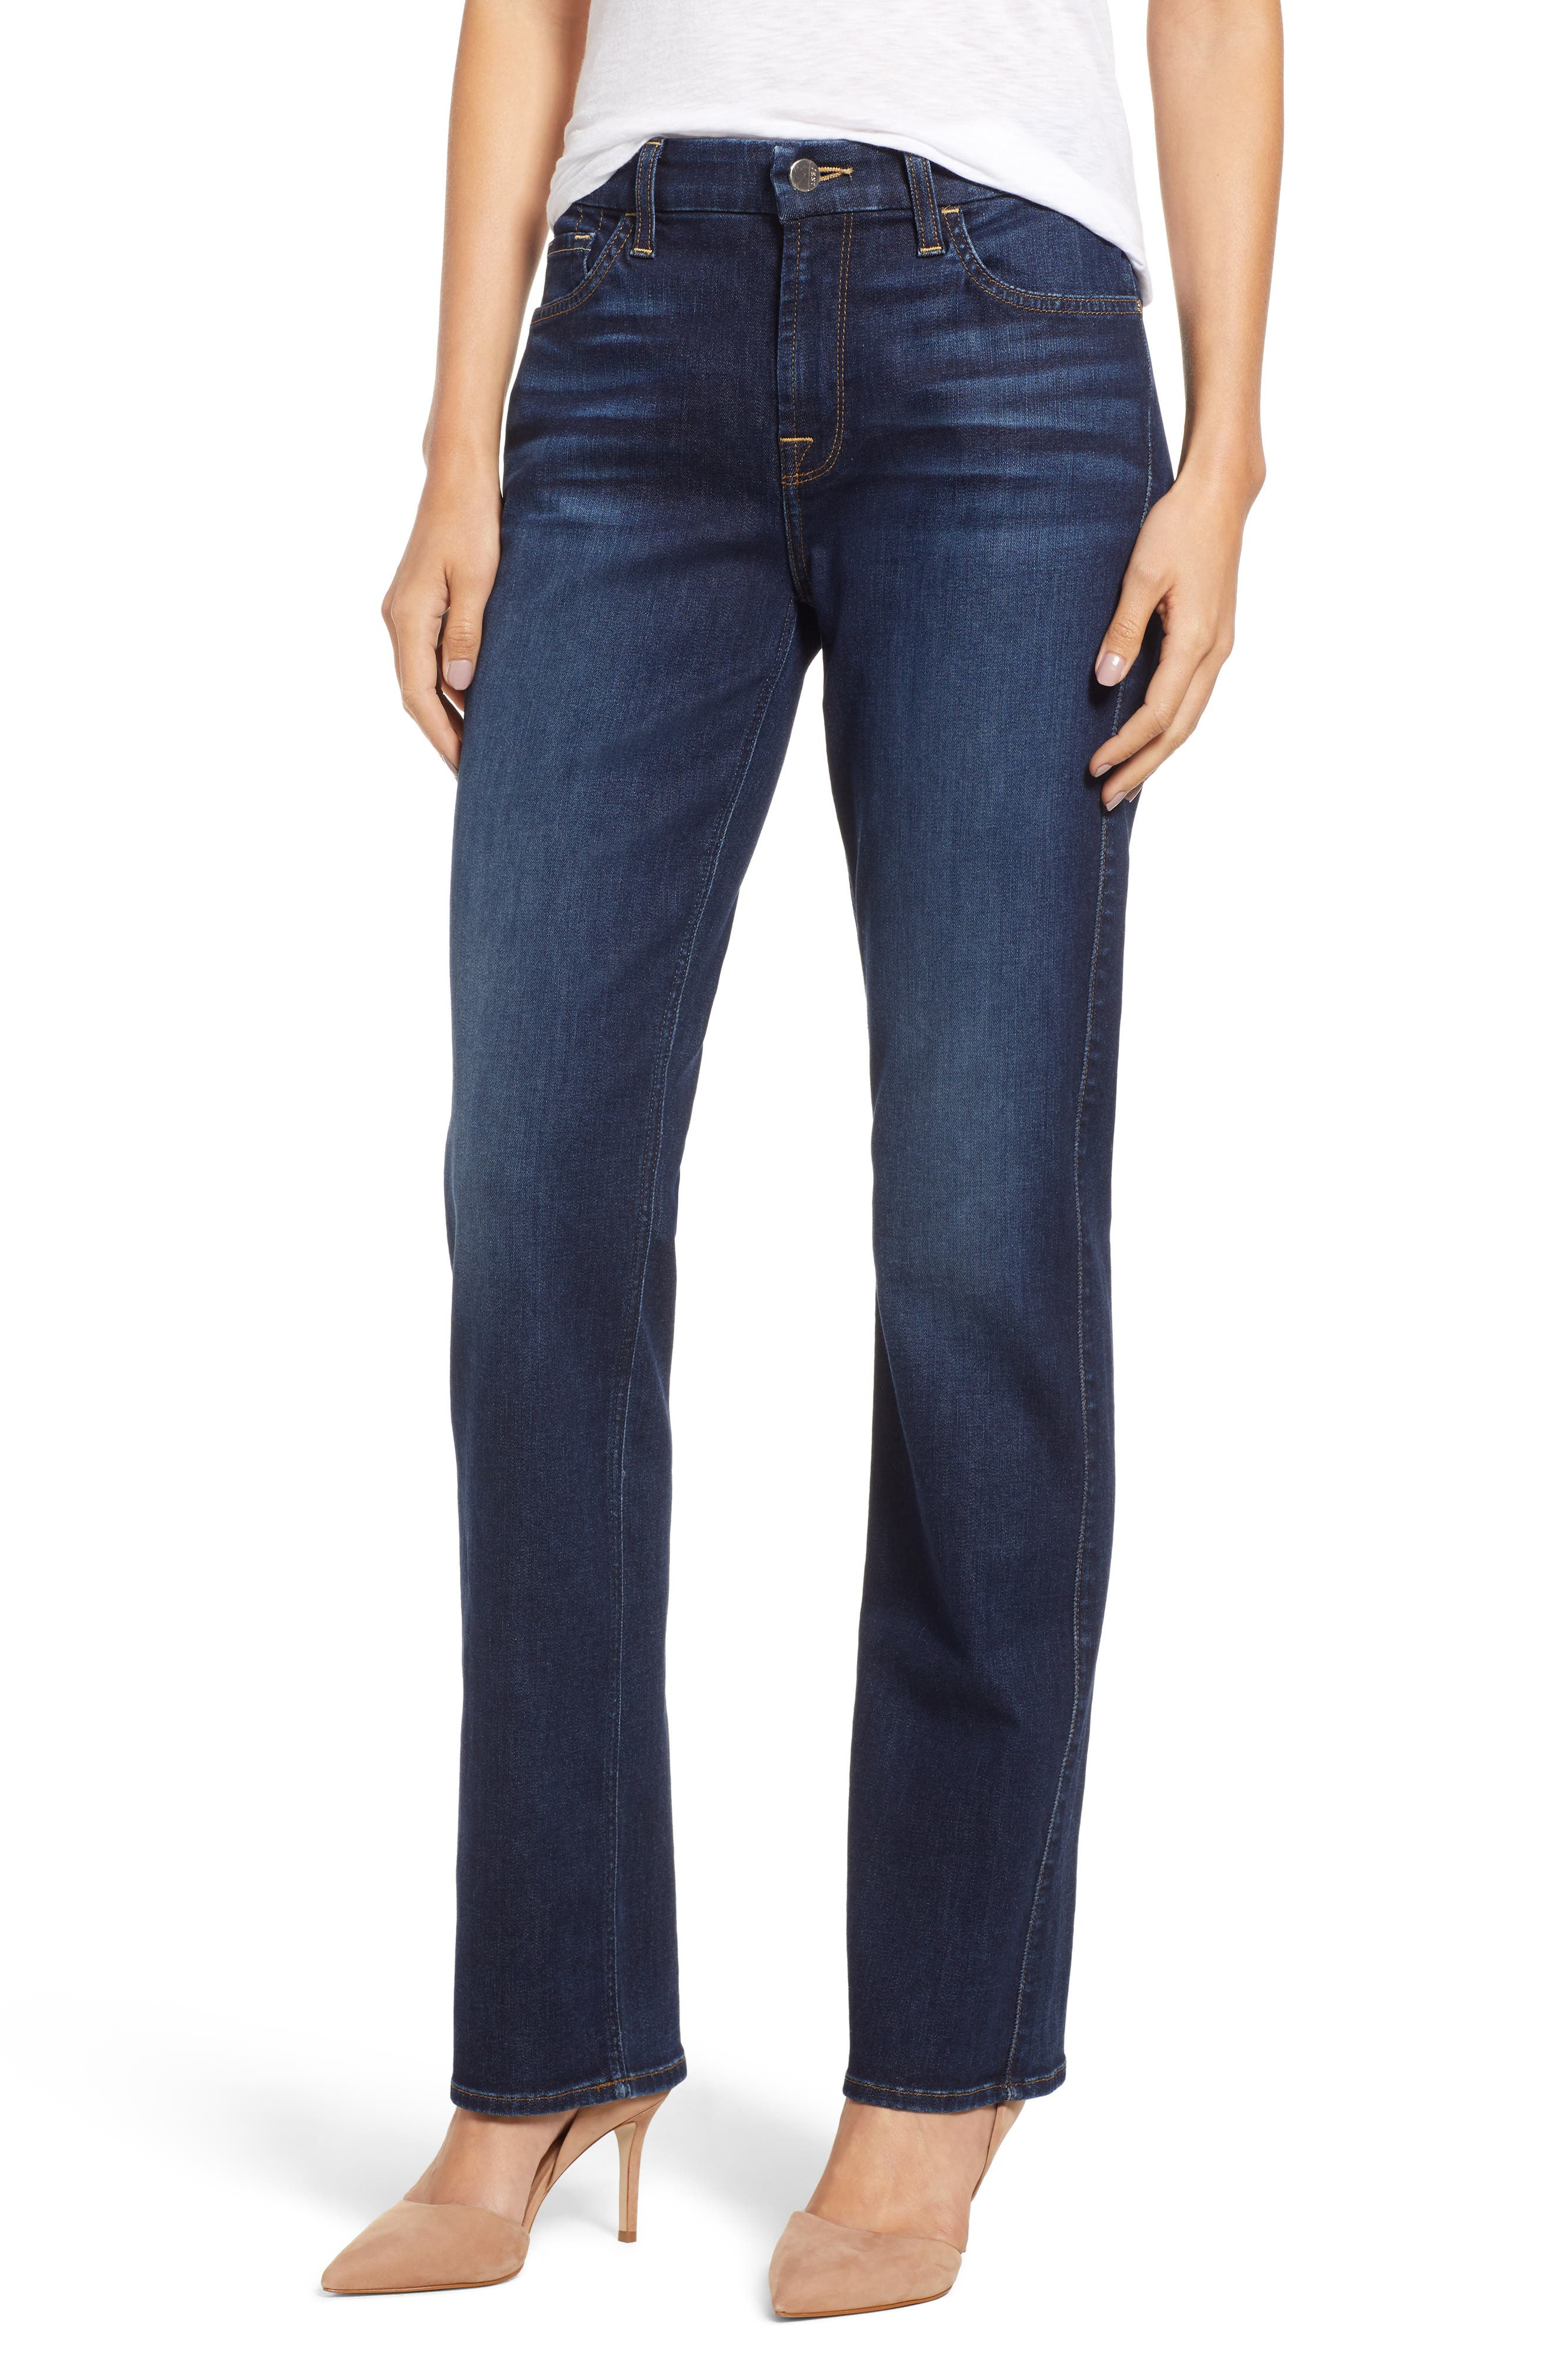 JEN7 BY 7 FOR ALL MANKIND, Stretch Slim Straight Leg Jeans, Main thumbnail 1, color, 400